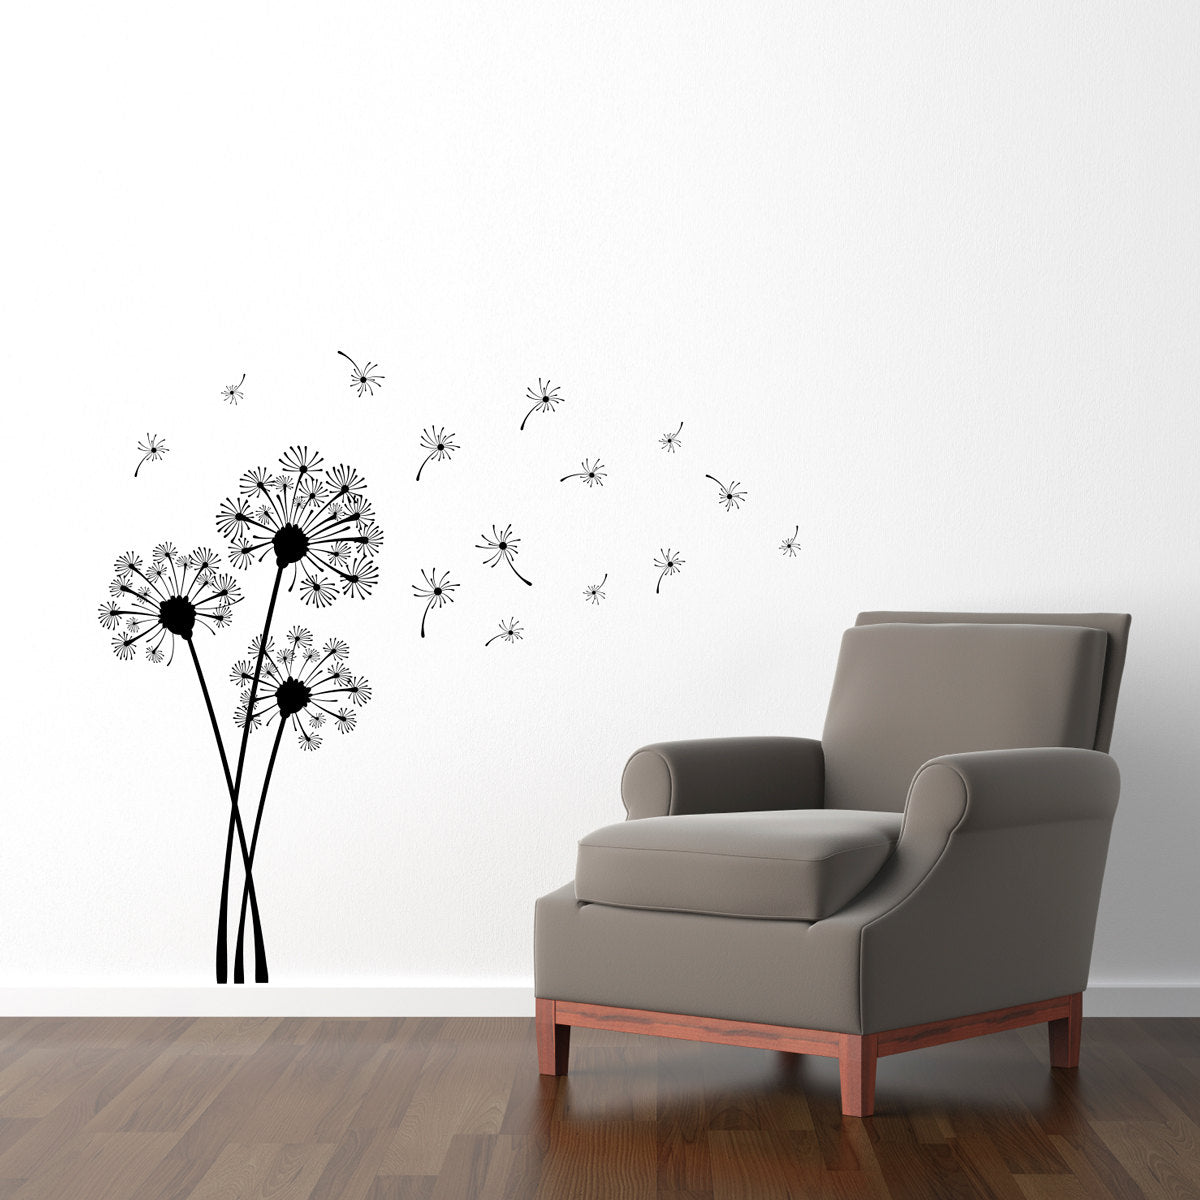 Exceptional Dandelion Wall Decal Set   Dandelions Blowing In The Wind   Dandelion  Flower And Seeds Wall Sticker   Medium Decal